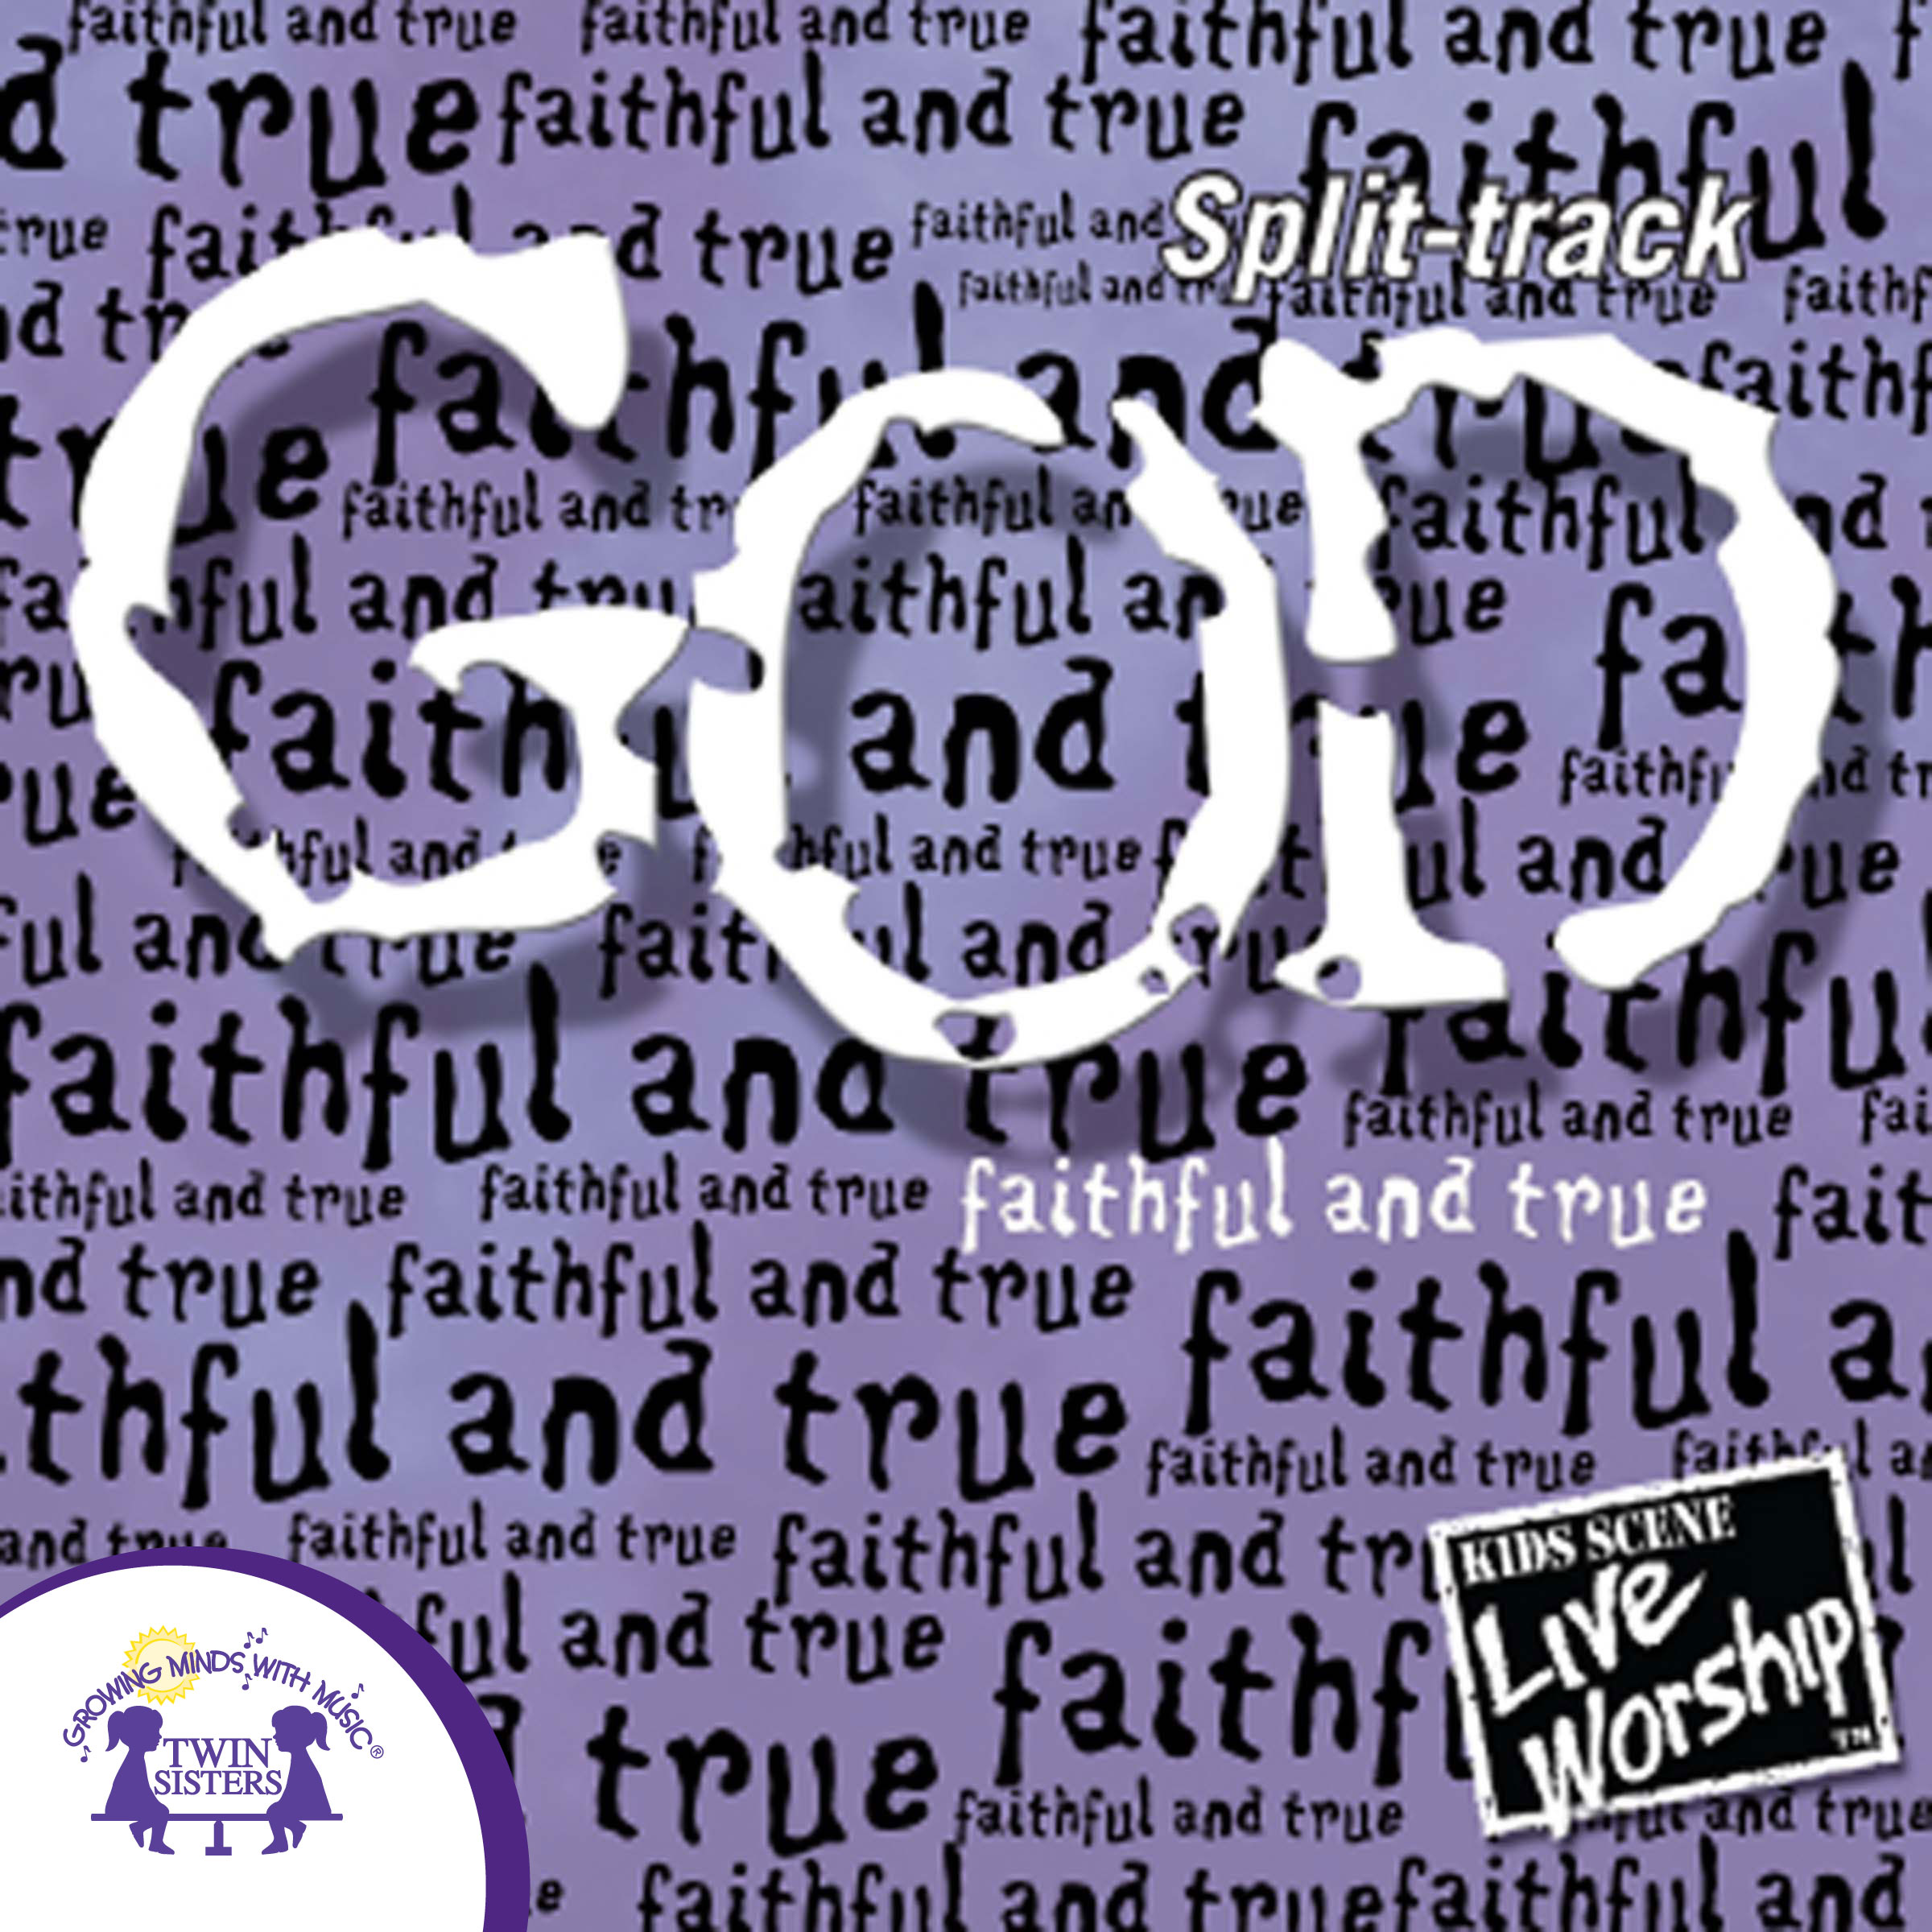 God – Faithful and True Split-Track | Twin Sisters